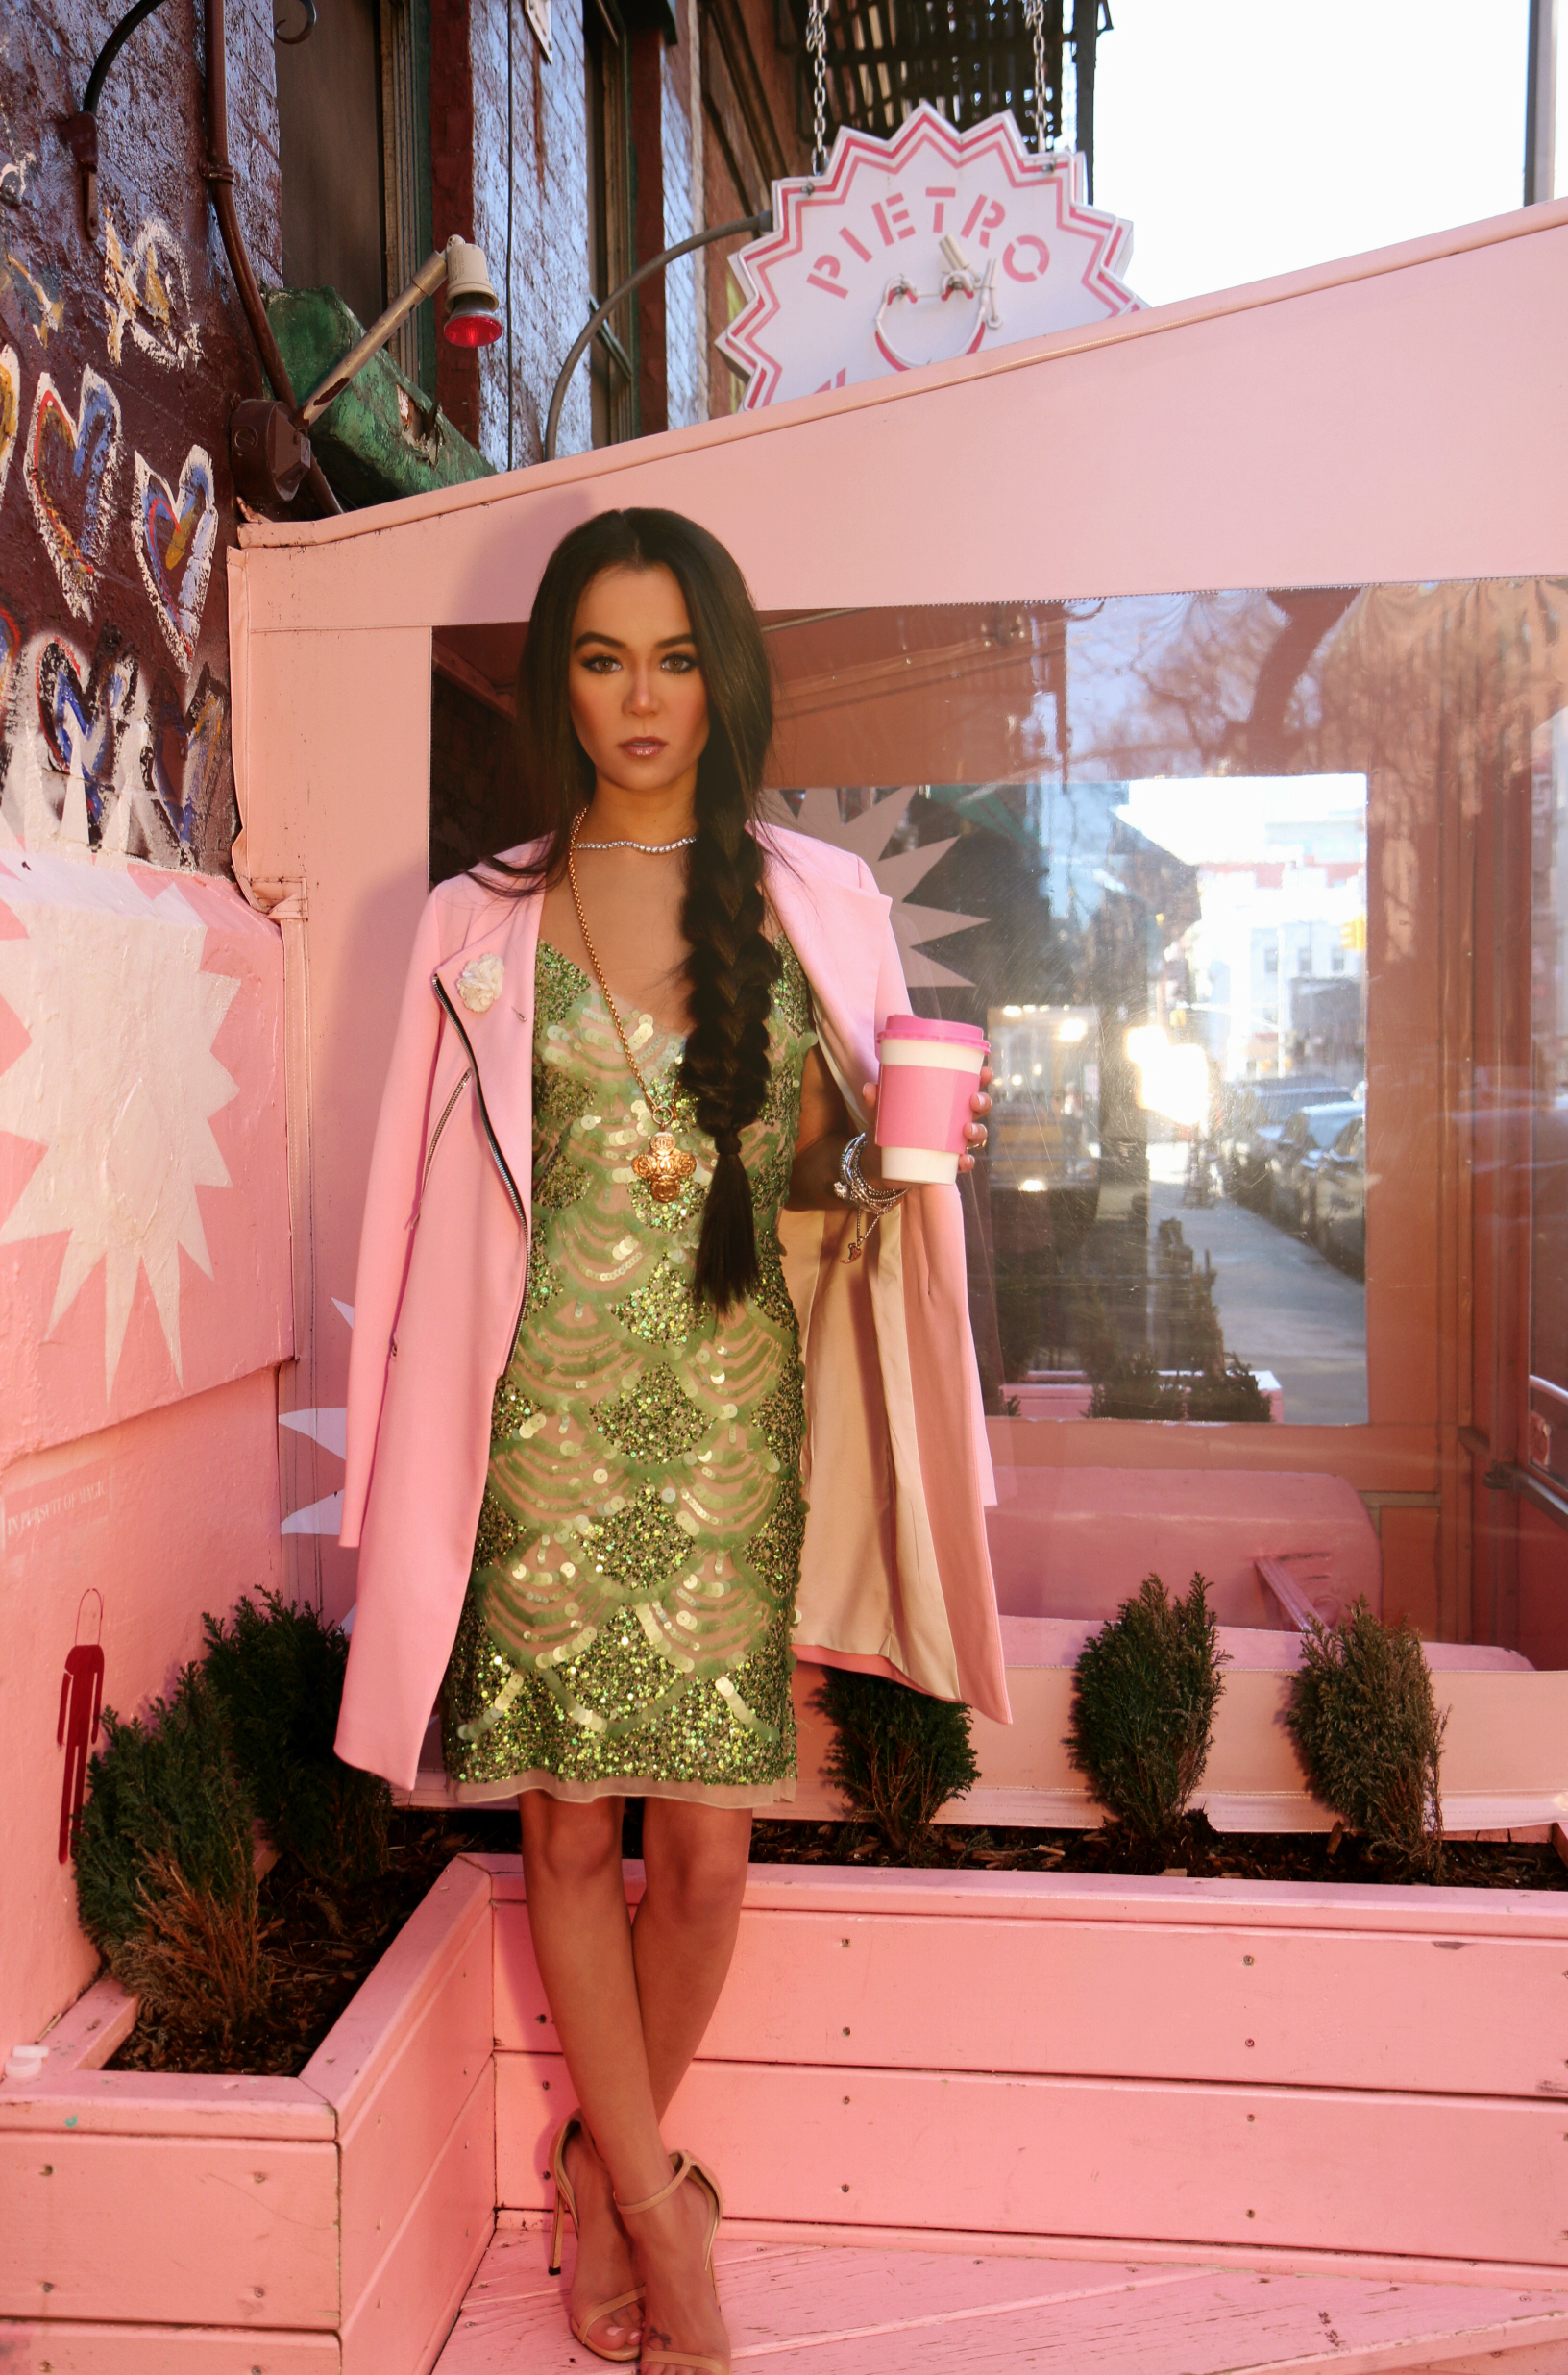 NYC Style Blogger Annamaria Stewart wearing a vintage mint green sequin paillette midi dress, millenniall pink long moto coat from Zara, vintage 90's gold chain necklace, and a diamond bracelet stack, pink coffee cup, Pietro Nolita